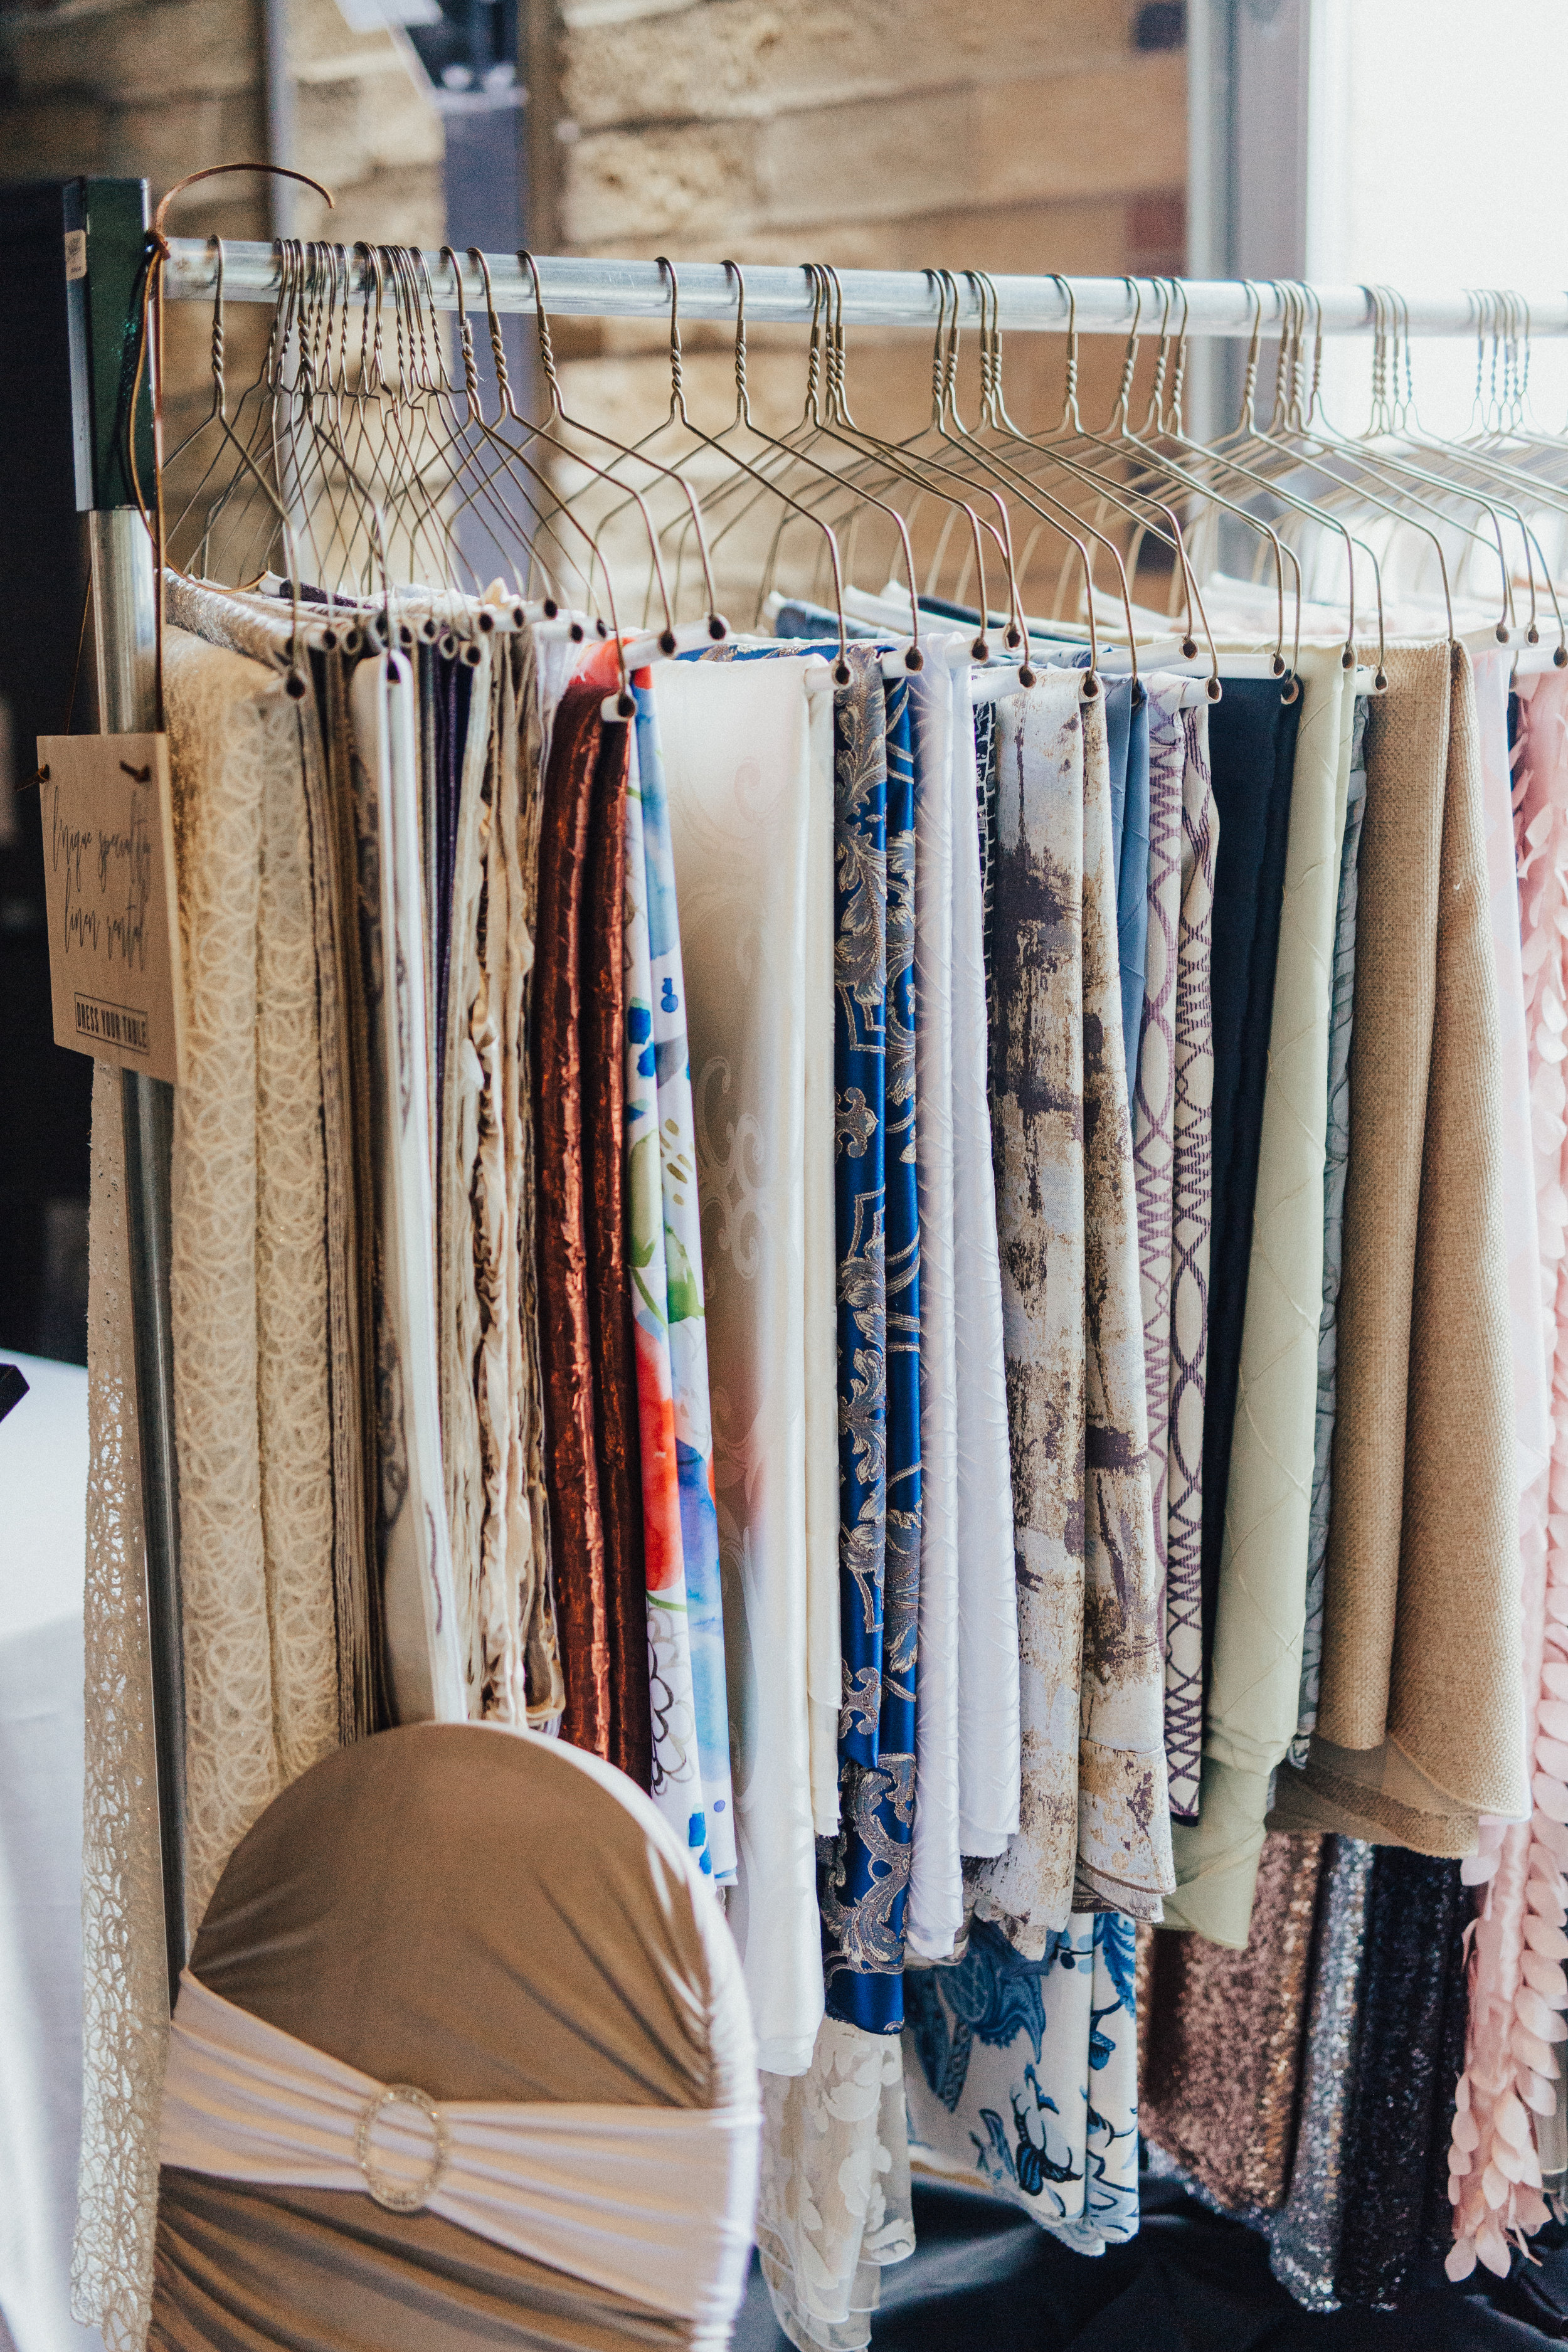 L'Nique Specialty Linen Rental - offers linen-related services for the special events industry, including rentals, laundry, purchase, set-up labor and more!